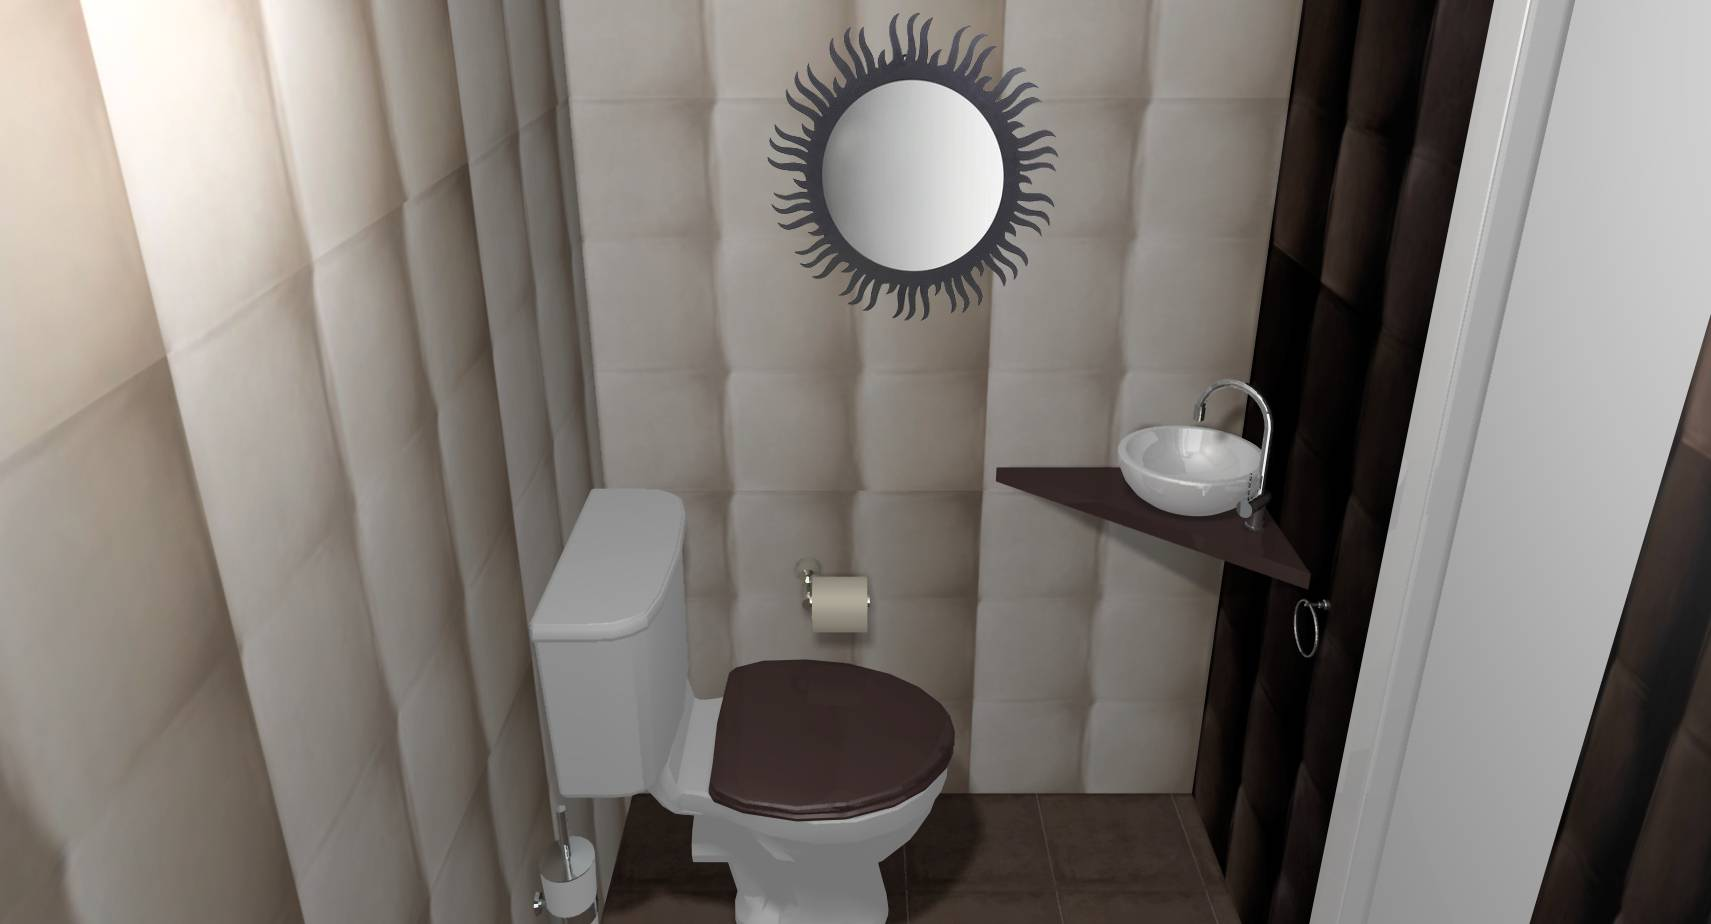 WC illusion capitons beige chocolat lave-mains